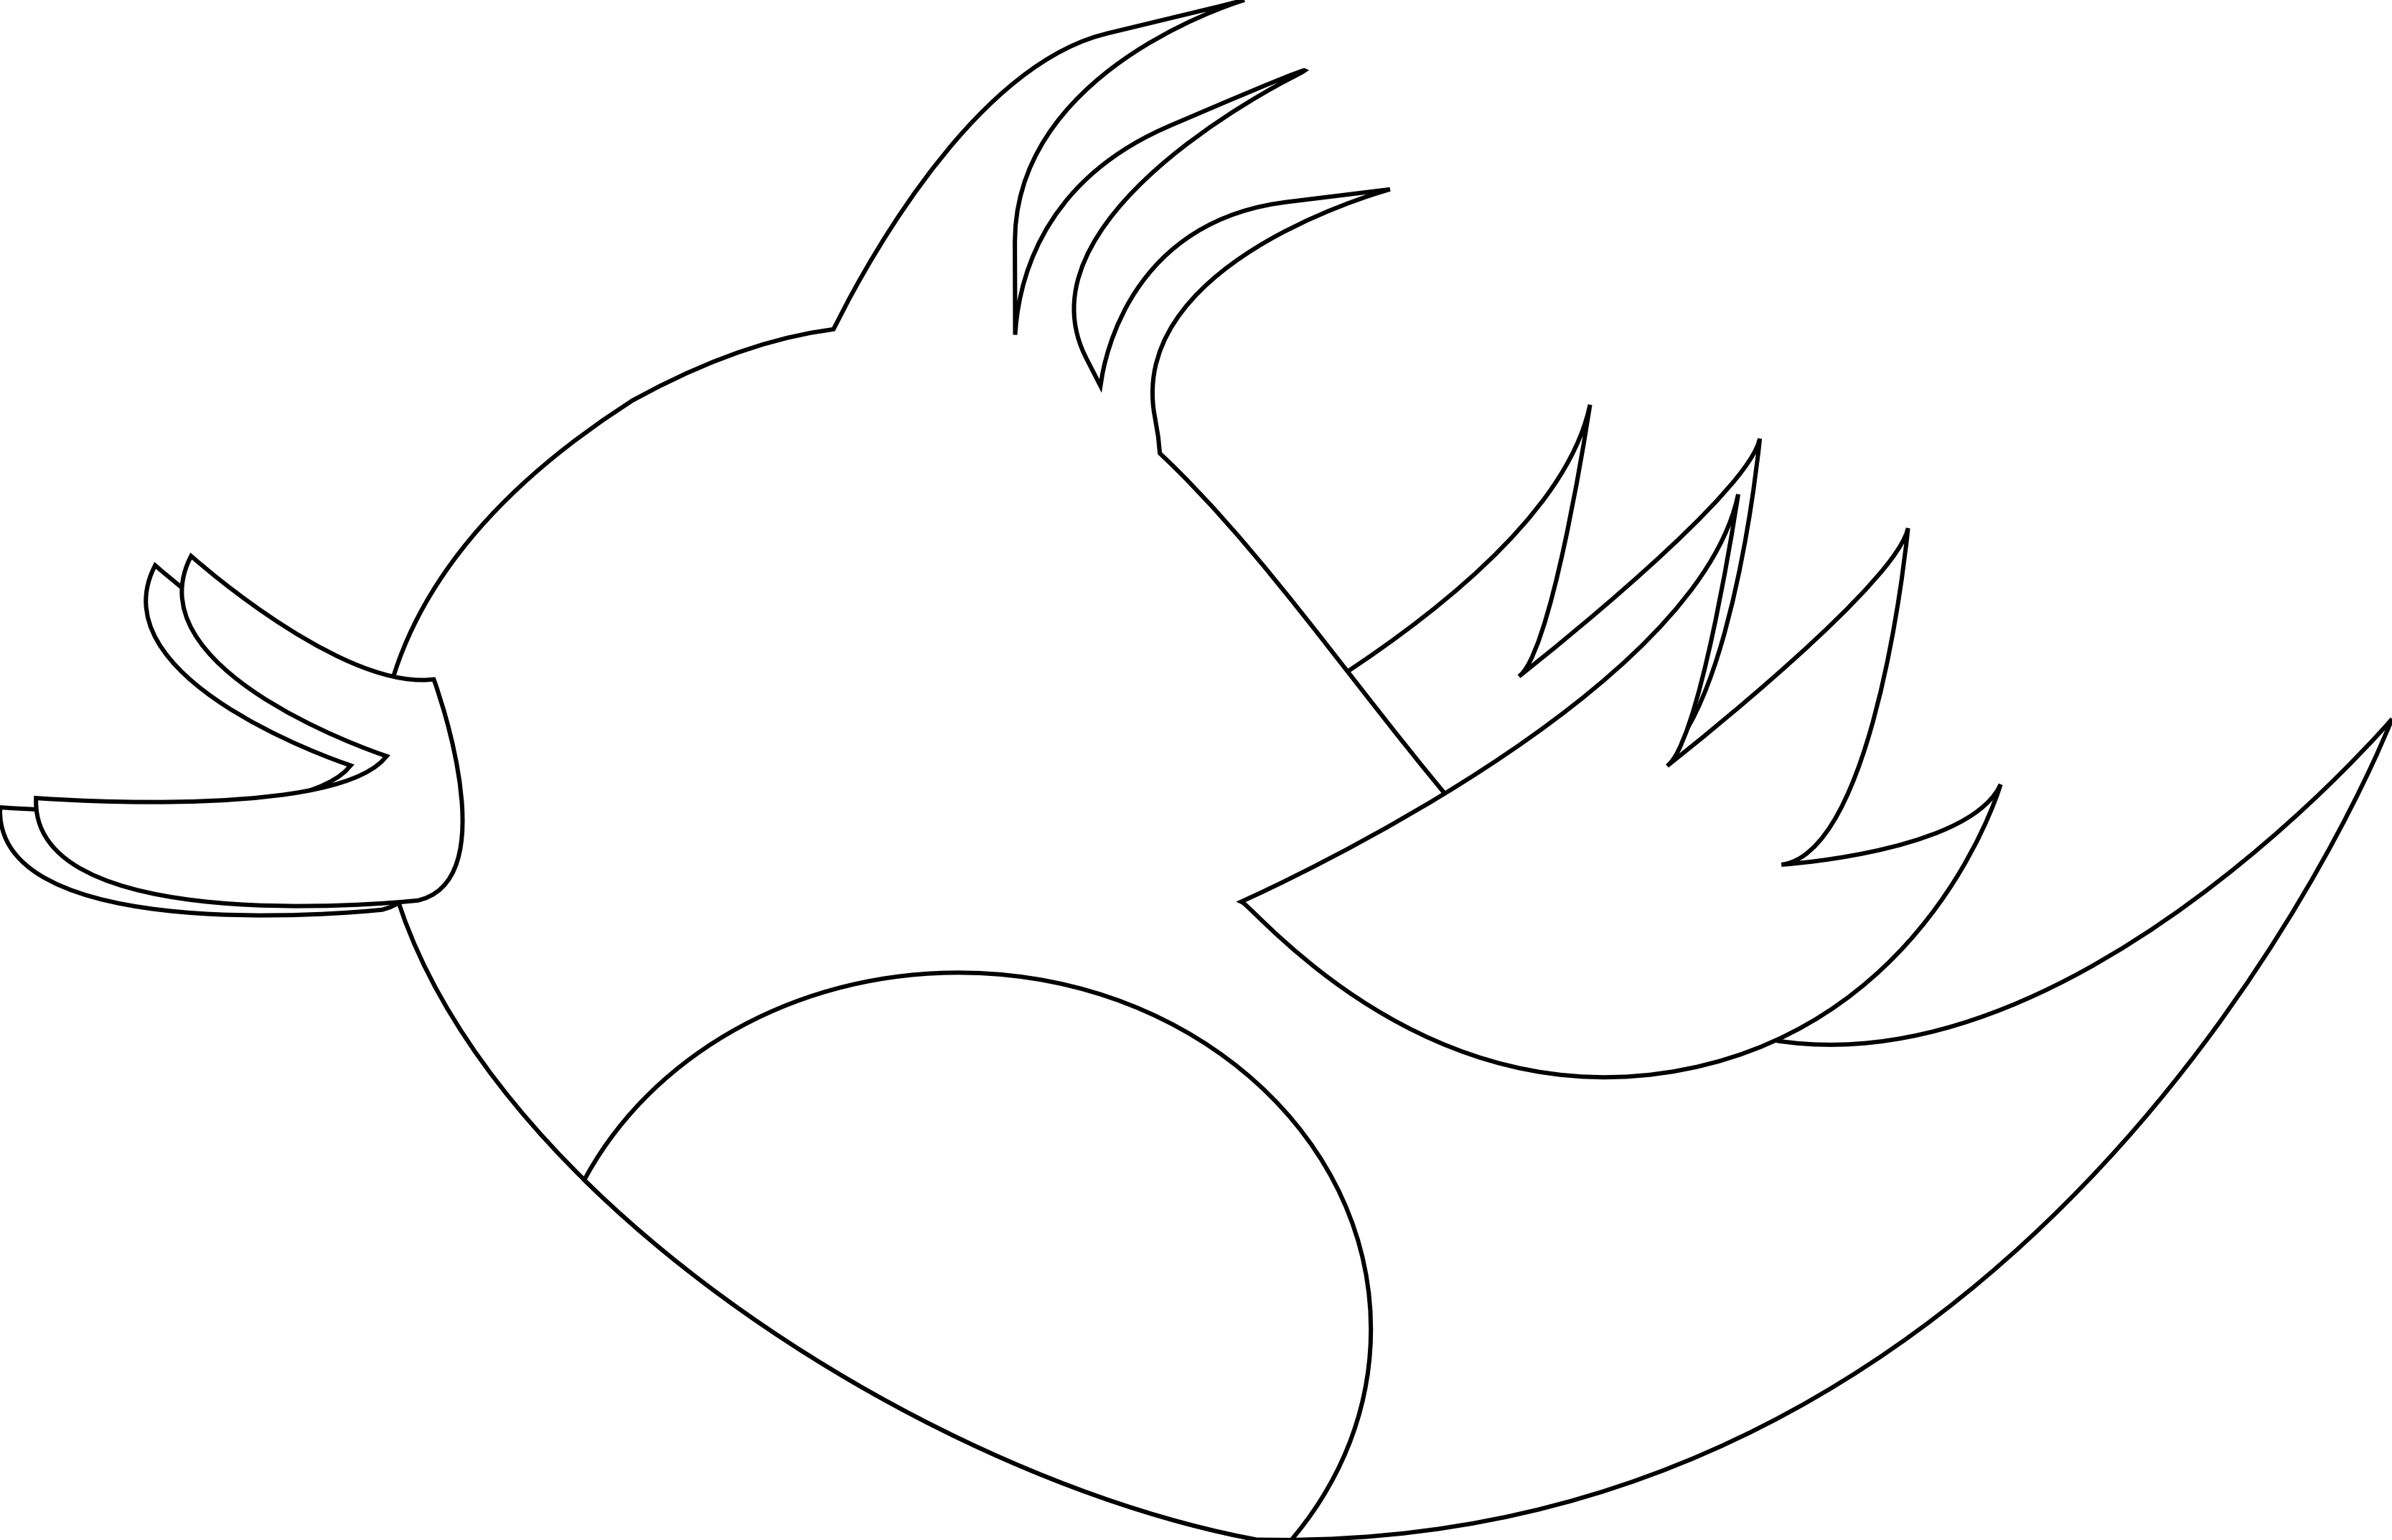 Line Art Dove : Dove line art cliparts